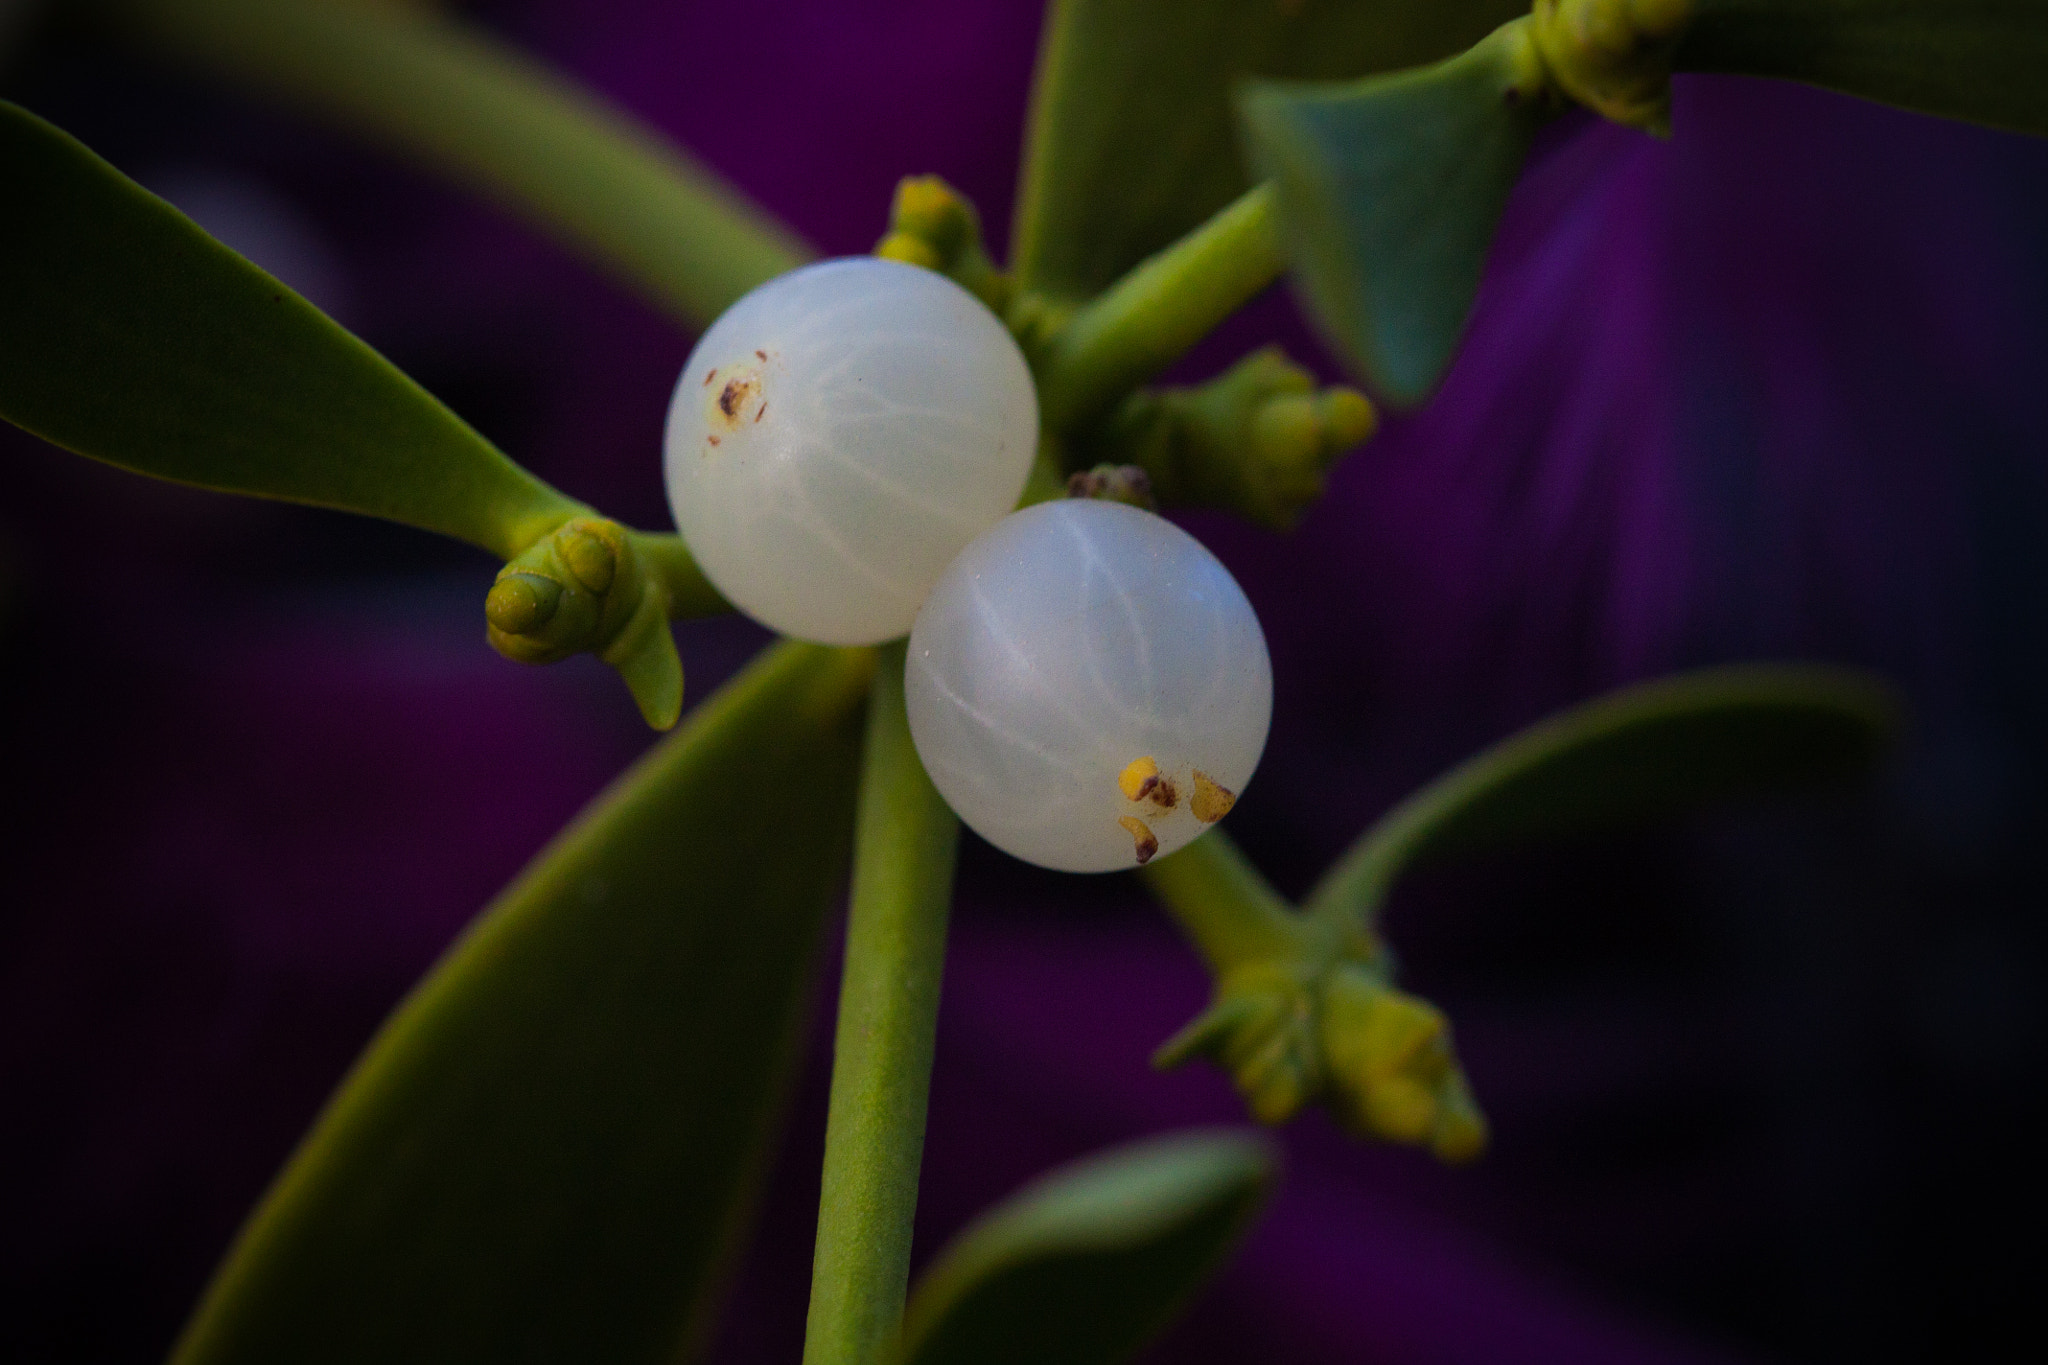 Photograph Mistletoe by Verónica Abad Yubero on 500px